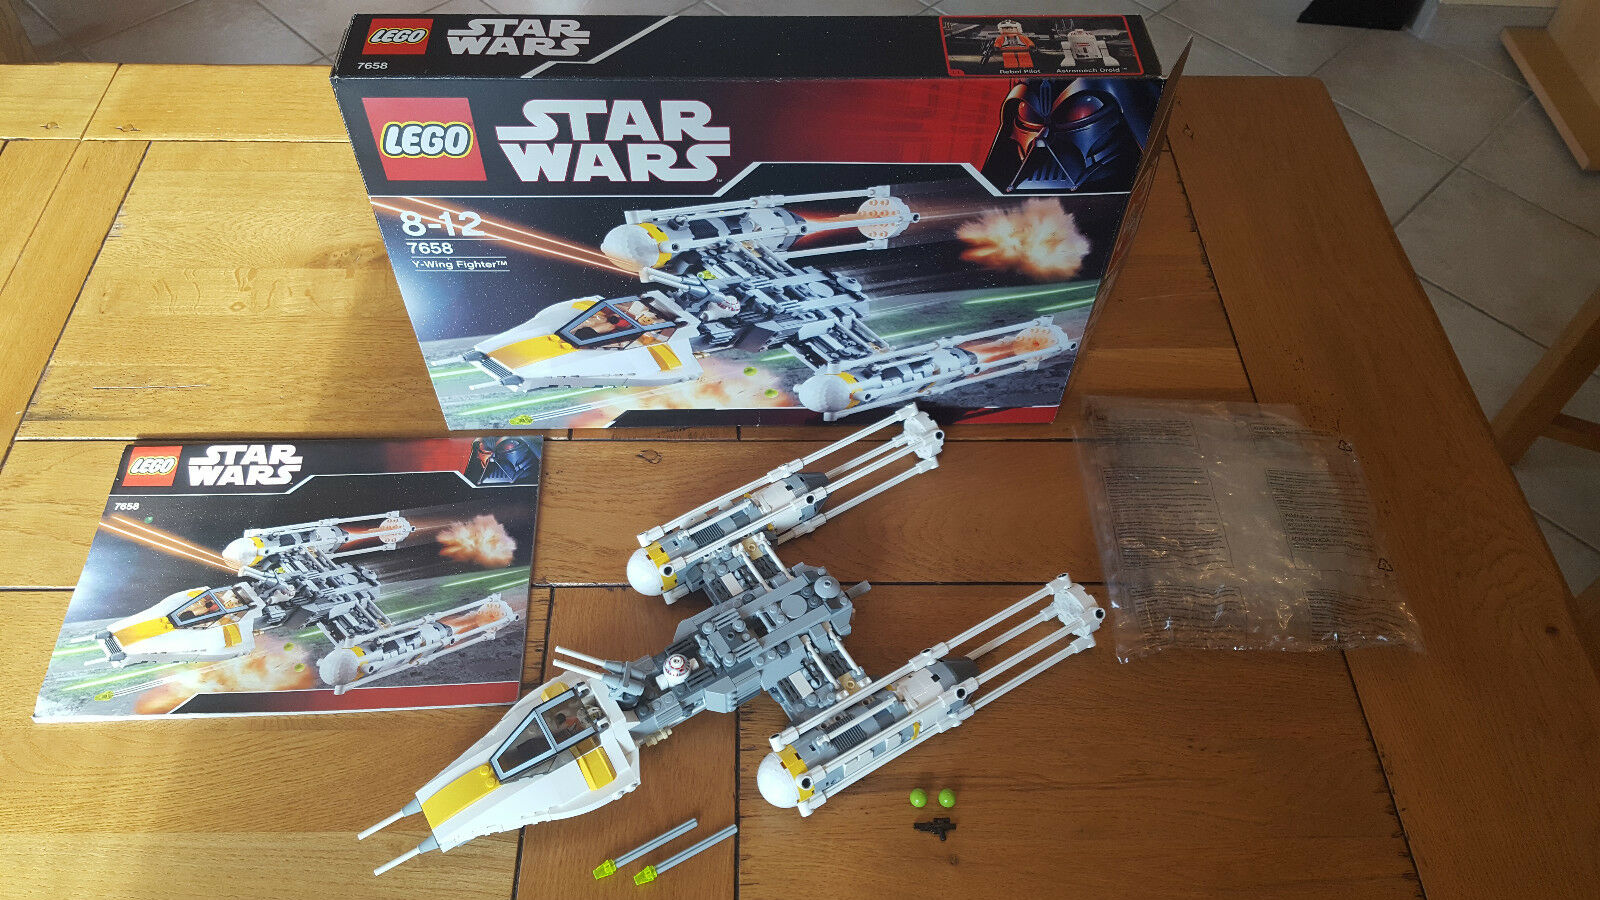 LEGO STAR WARS 7658  Y-Wing , 100% COMPLET + BOITE, COMME NEUF  RARE